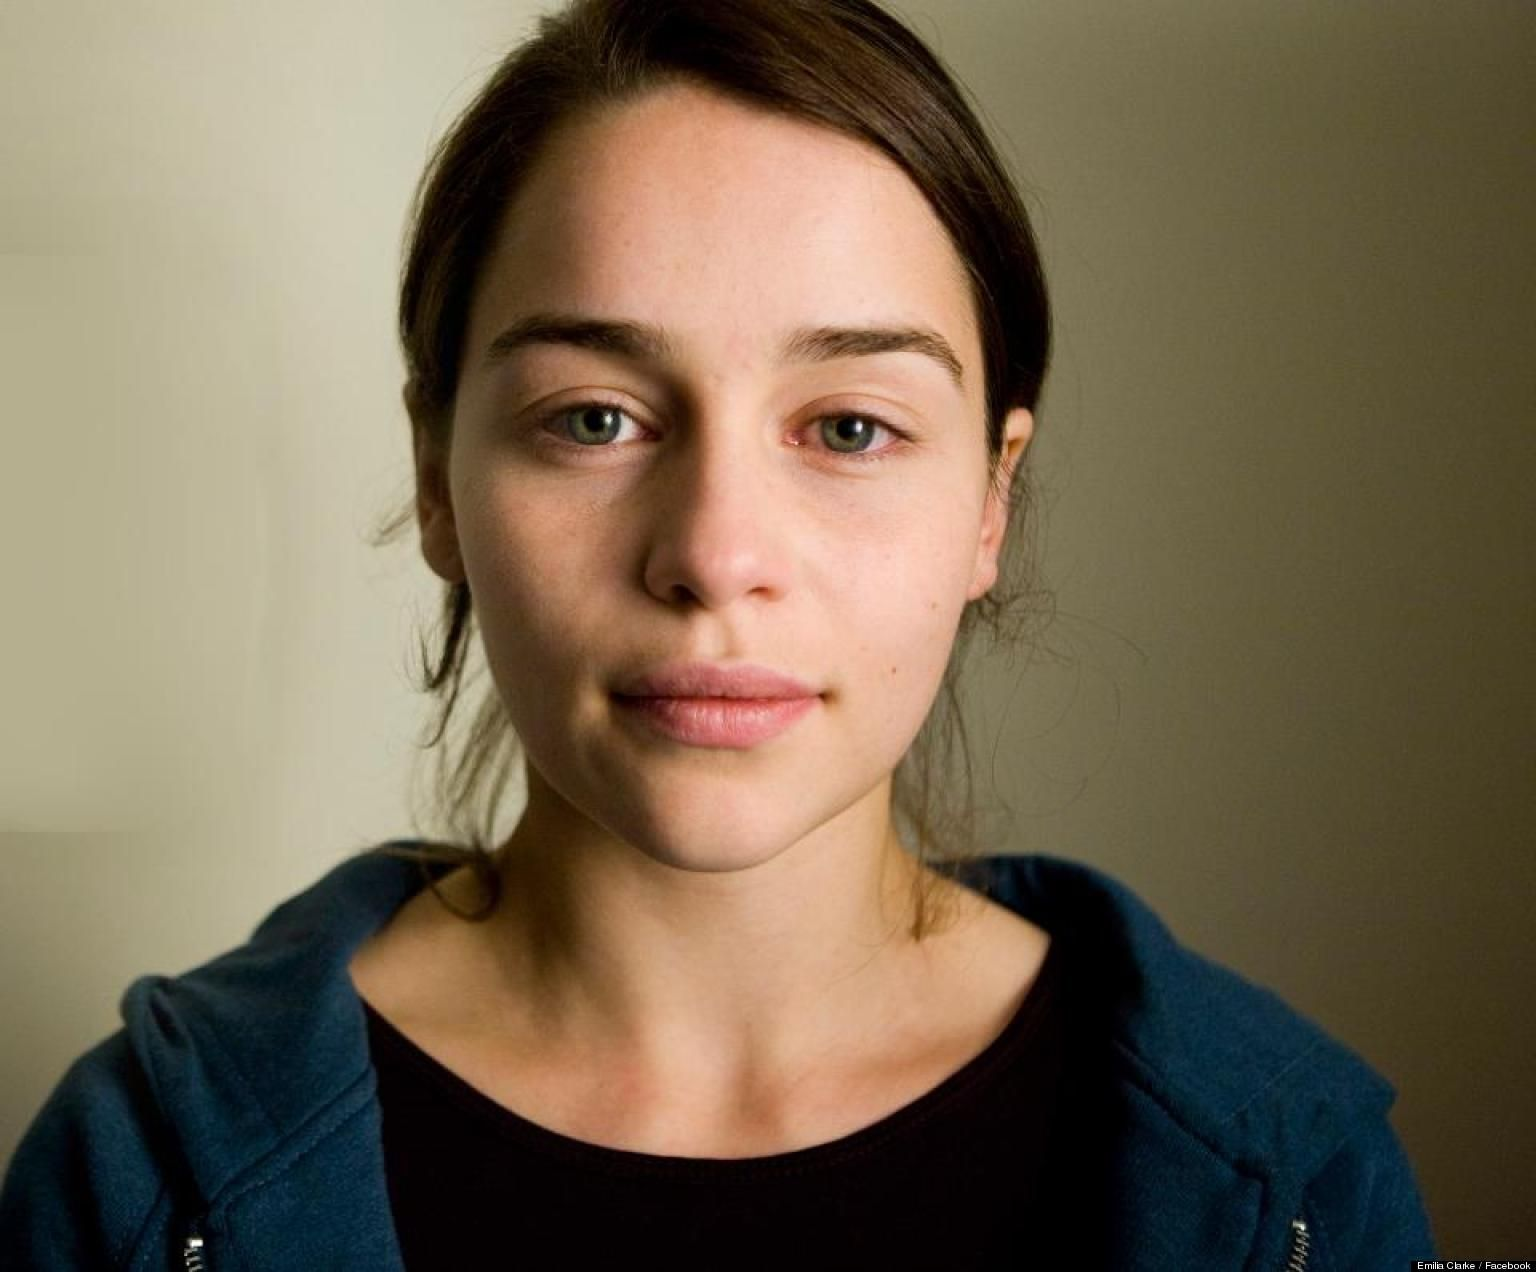 Emilia Clarke With No Makeup On Is Still The Most Gorgeous Woman On Earth | Emilia Clarke ...